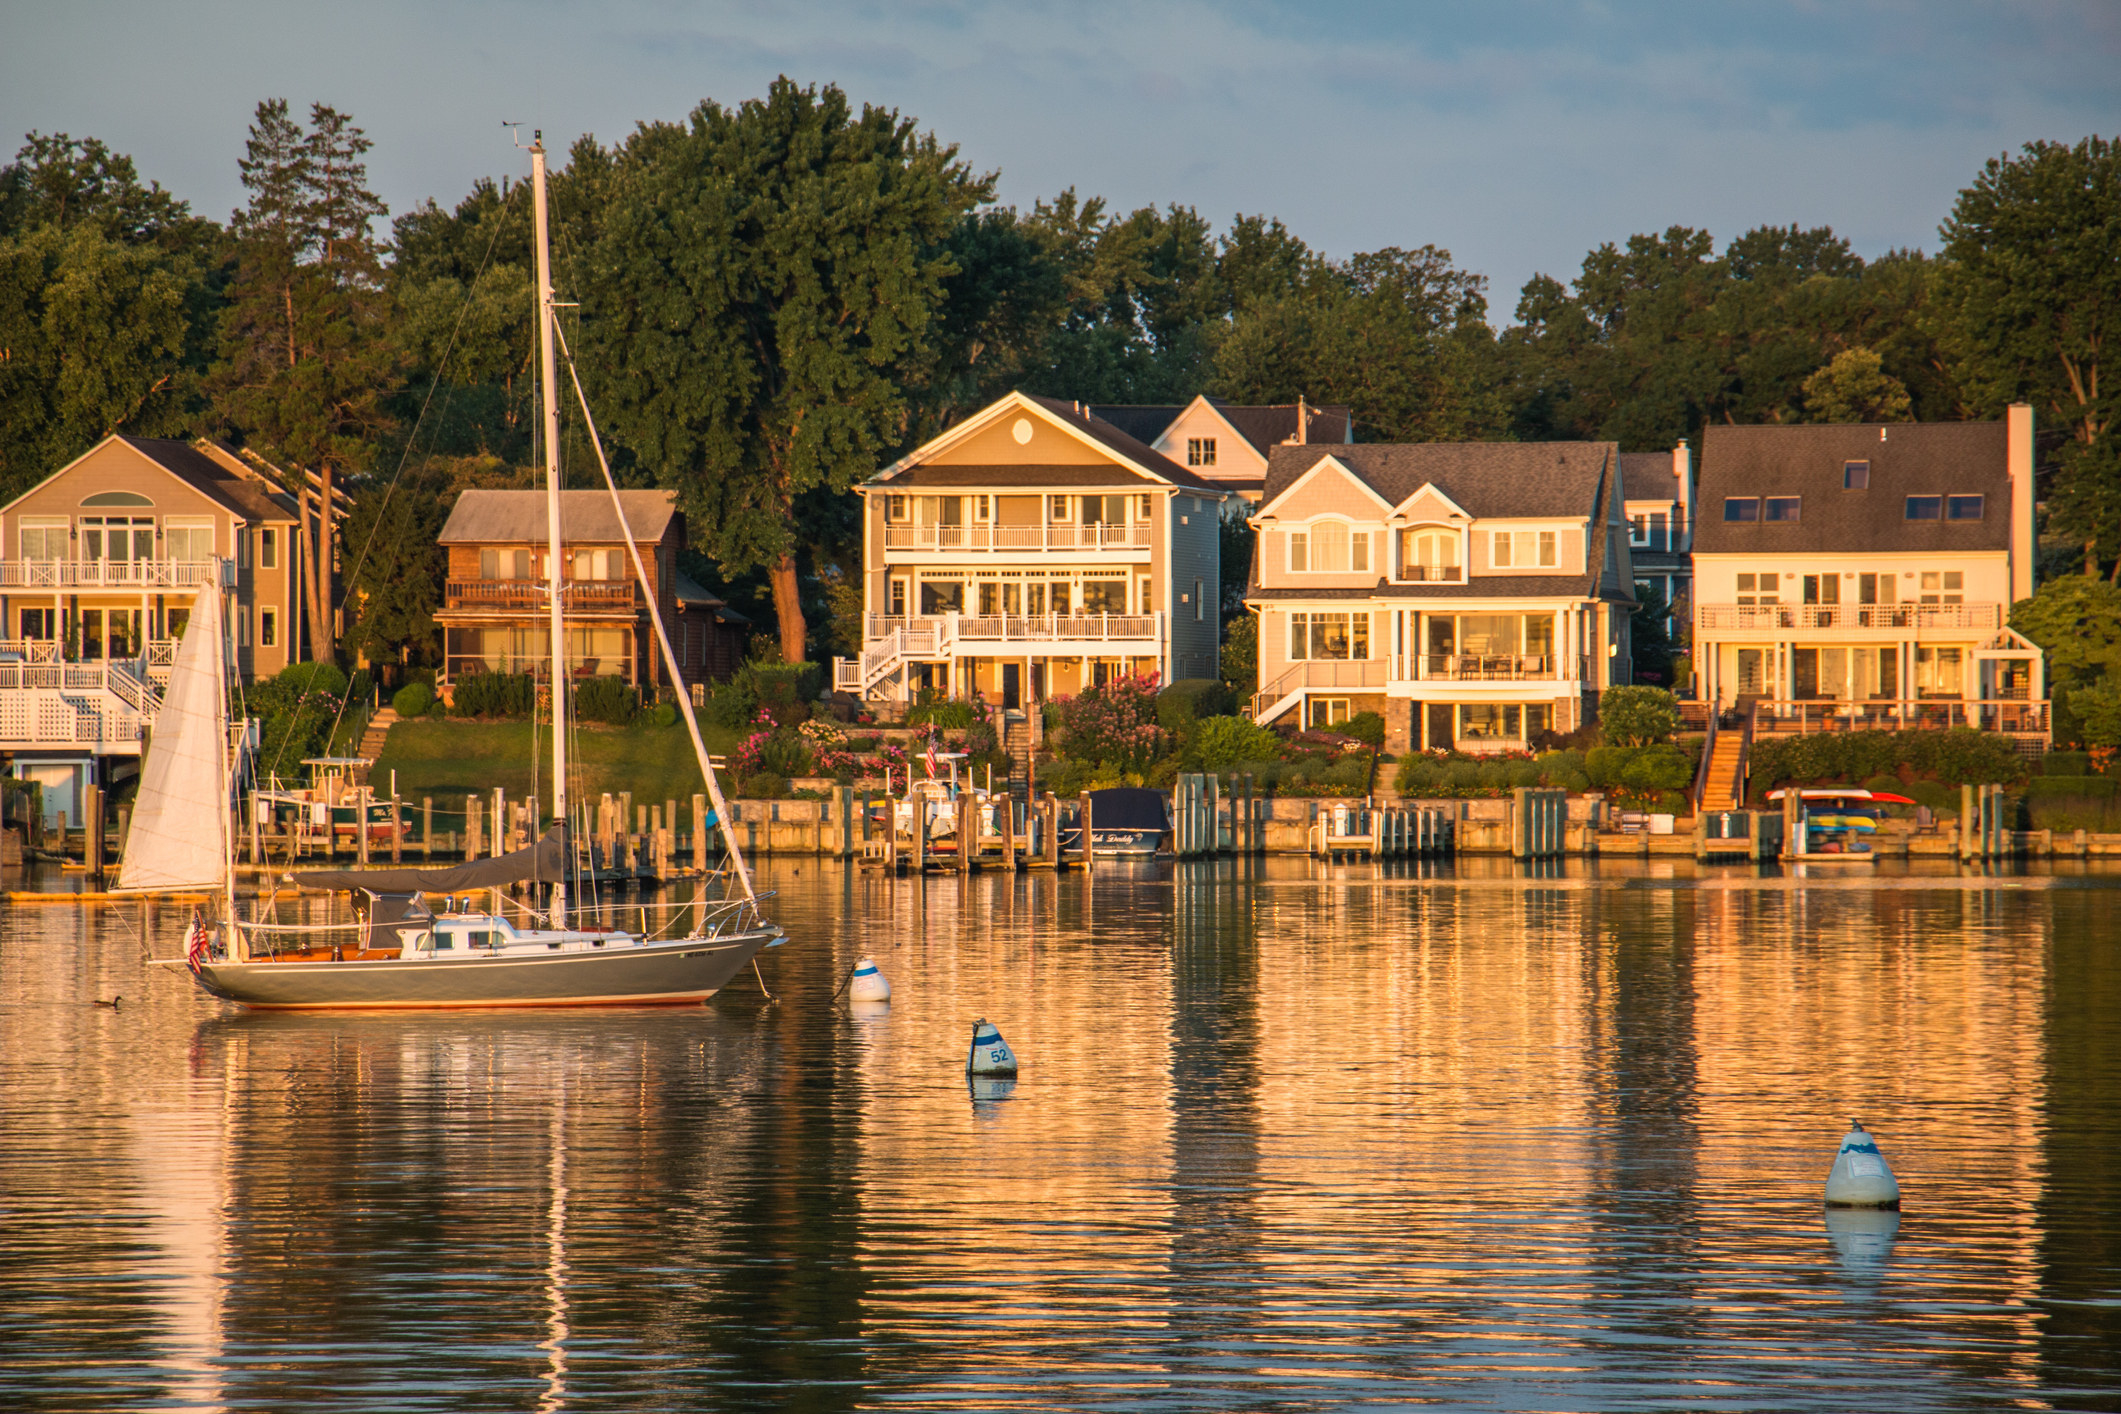 A sailboat passes by lake-front houses during golden hour in Annapolis